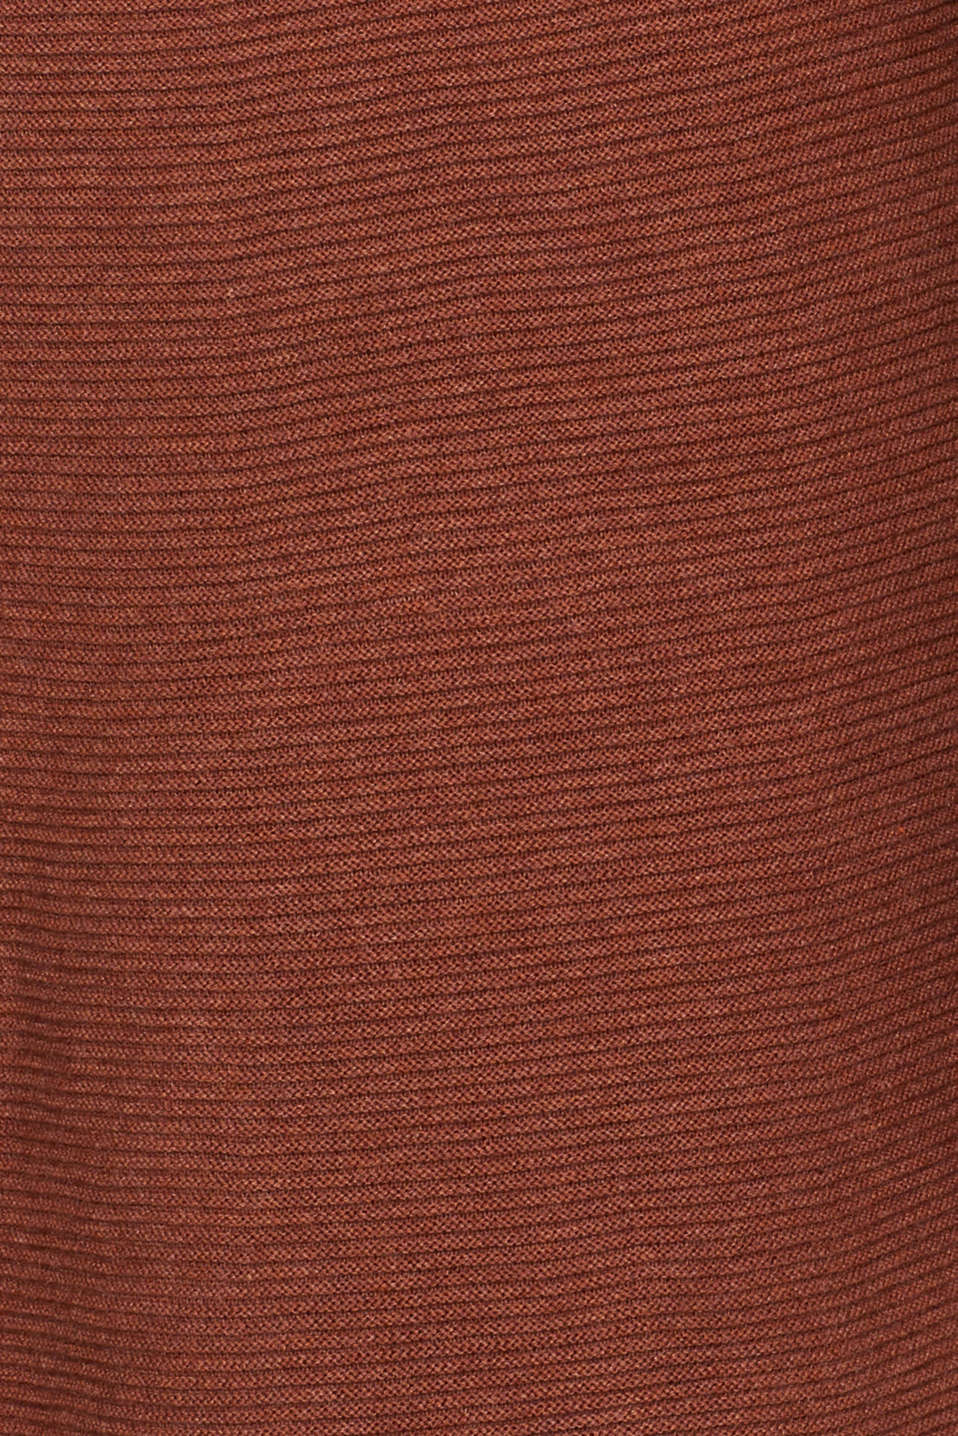 Knitted dress with balloon sleeves, 100% cotton, RUST BROWN 5, detail image number 4